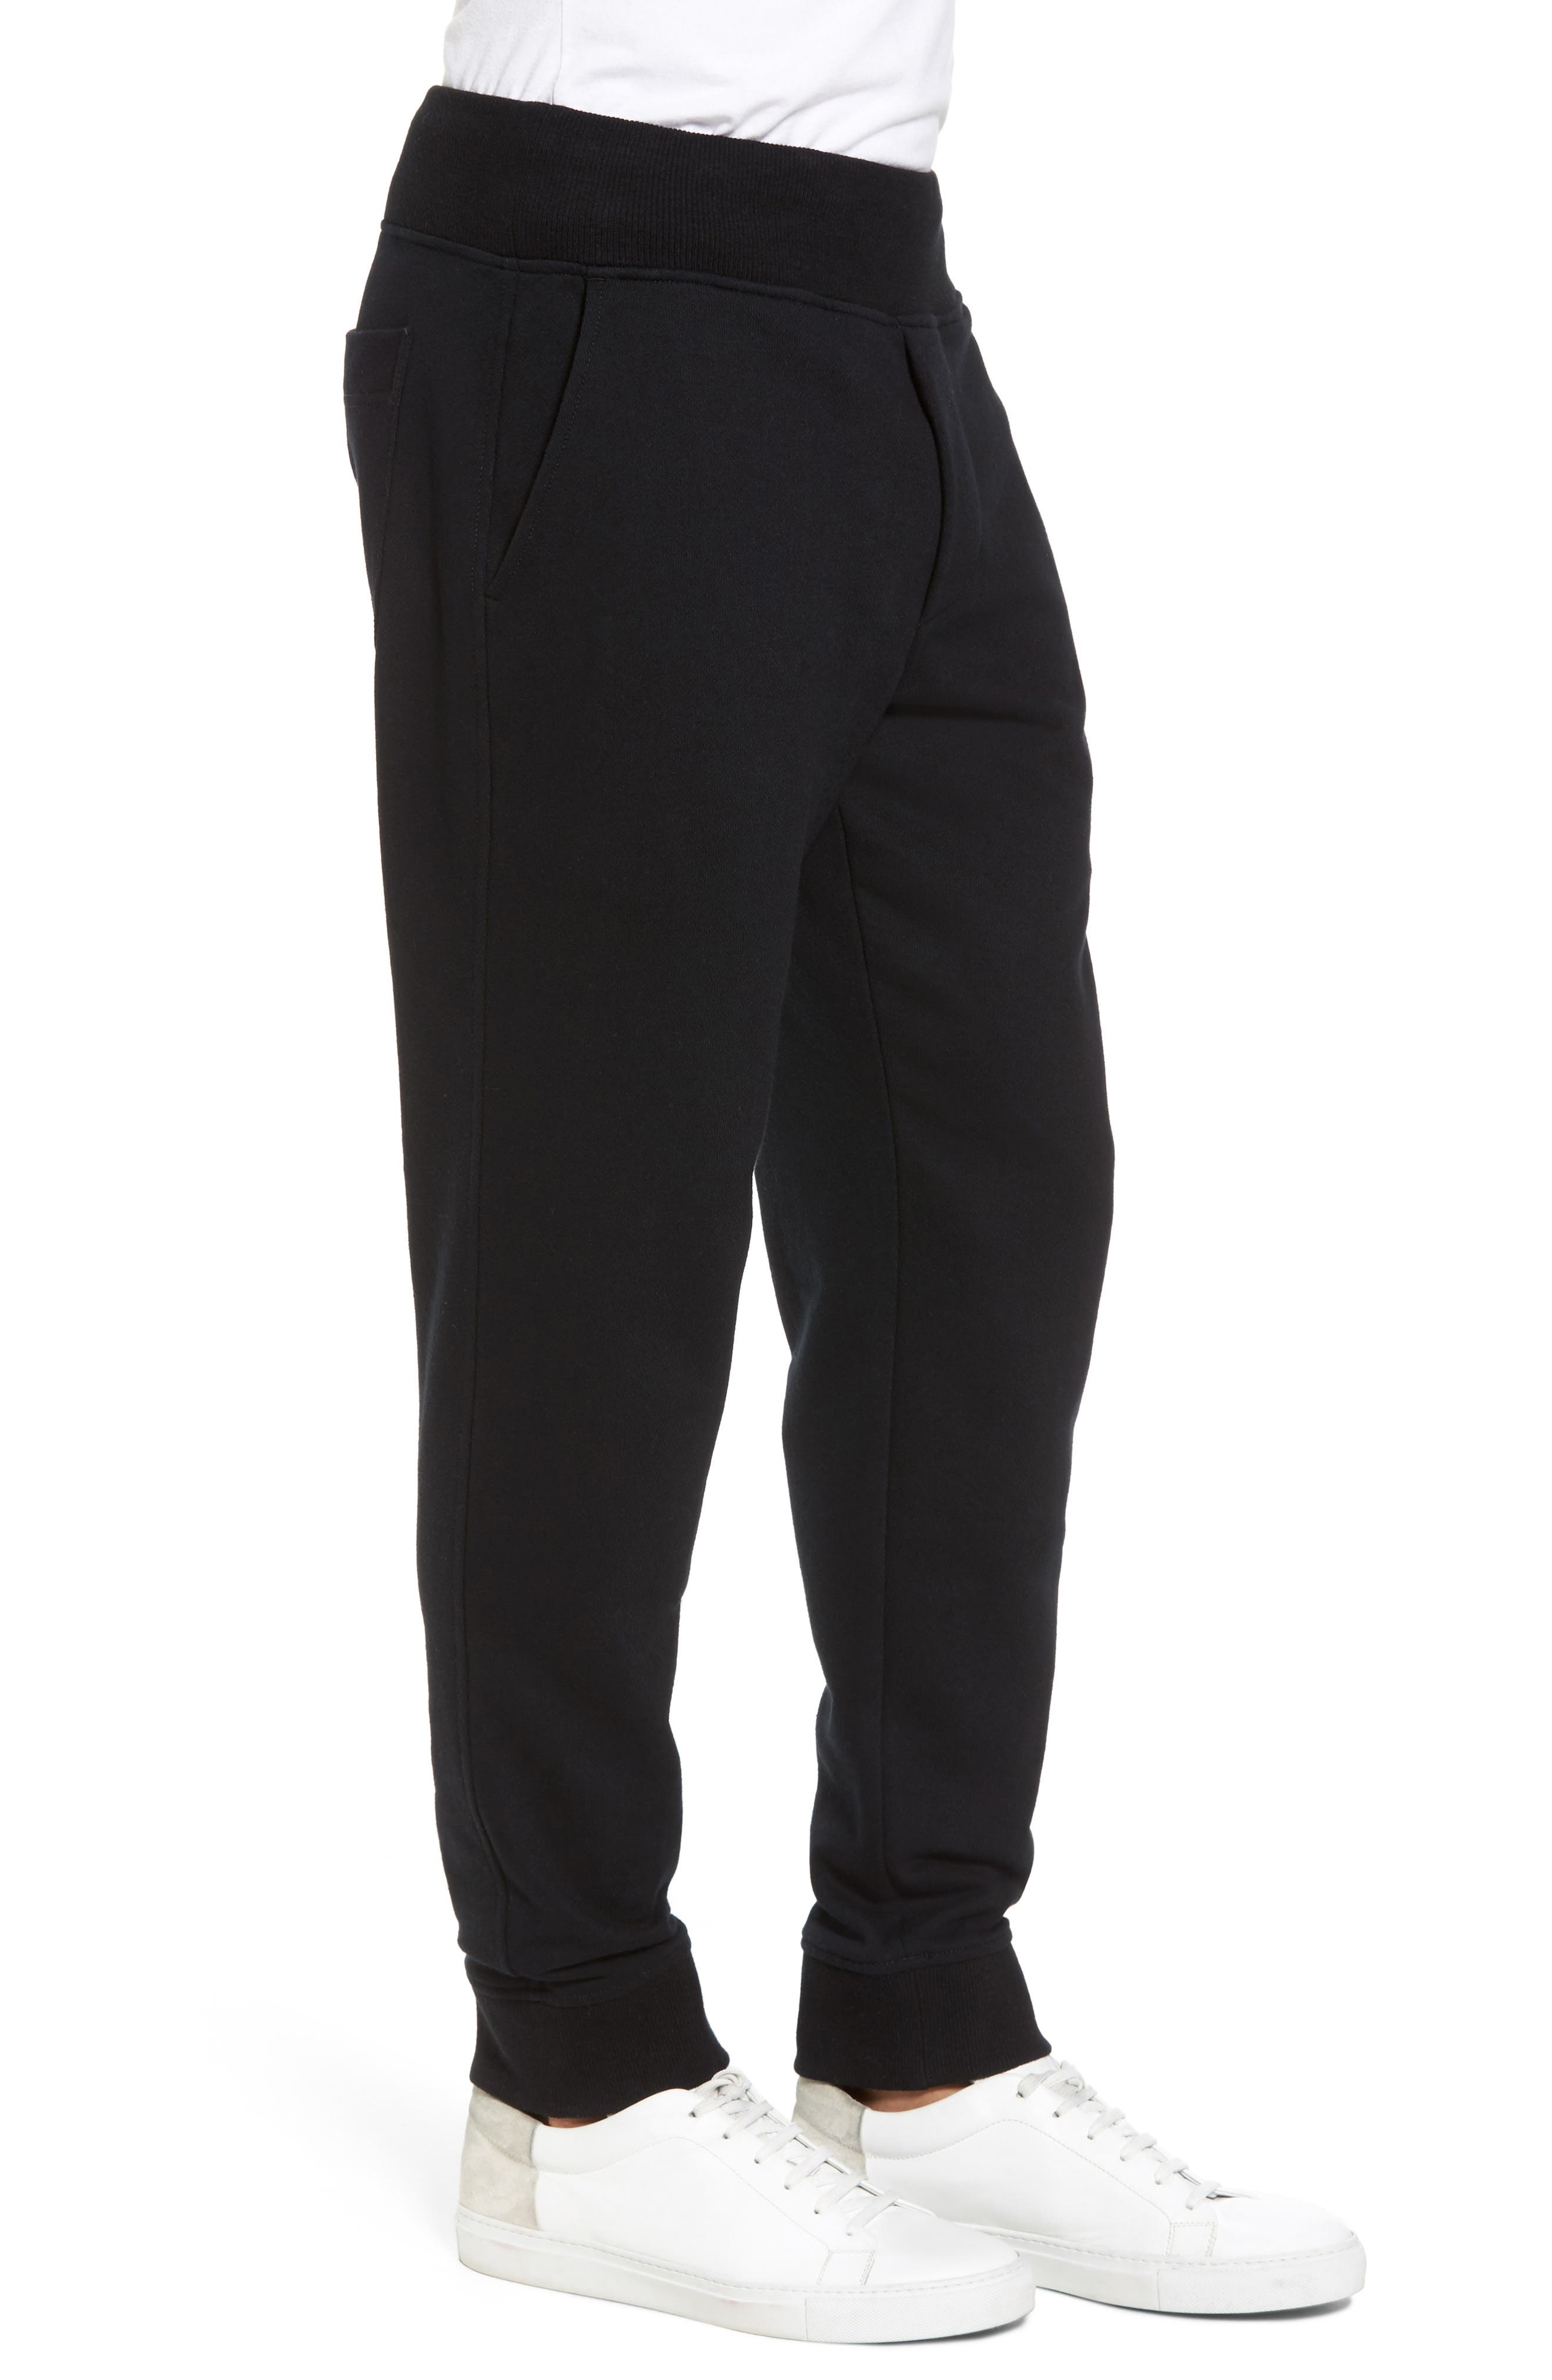 French Terry Regular Fit Sweatpants,                             Alternate thumbnail 3, color,                             001